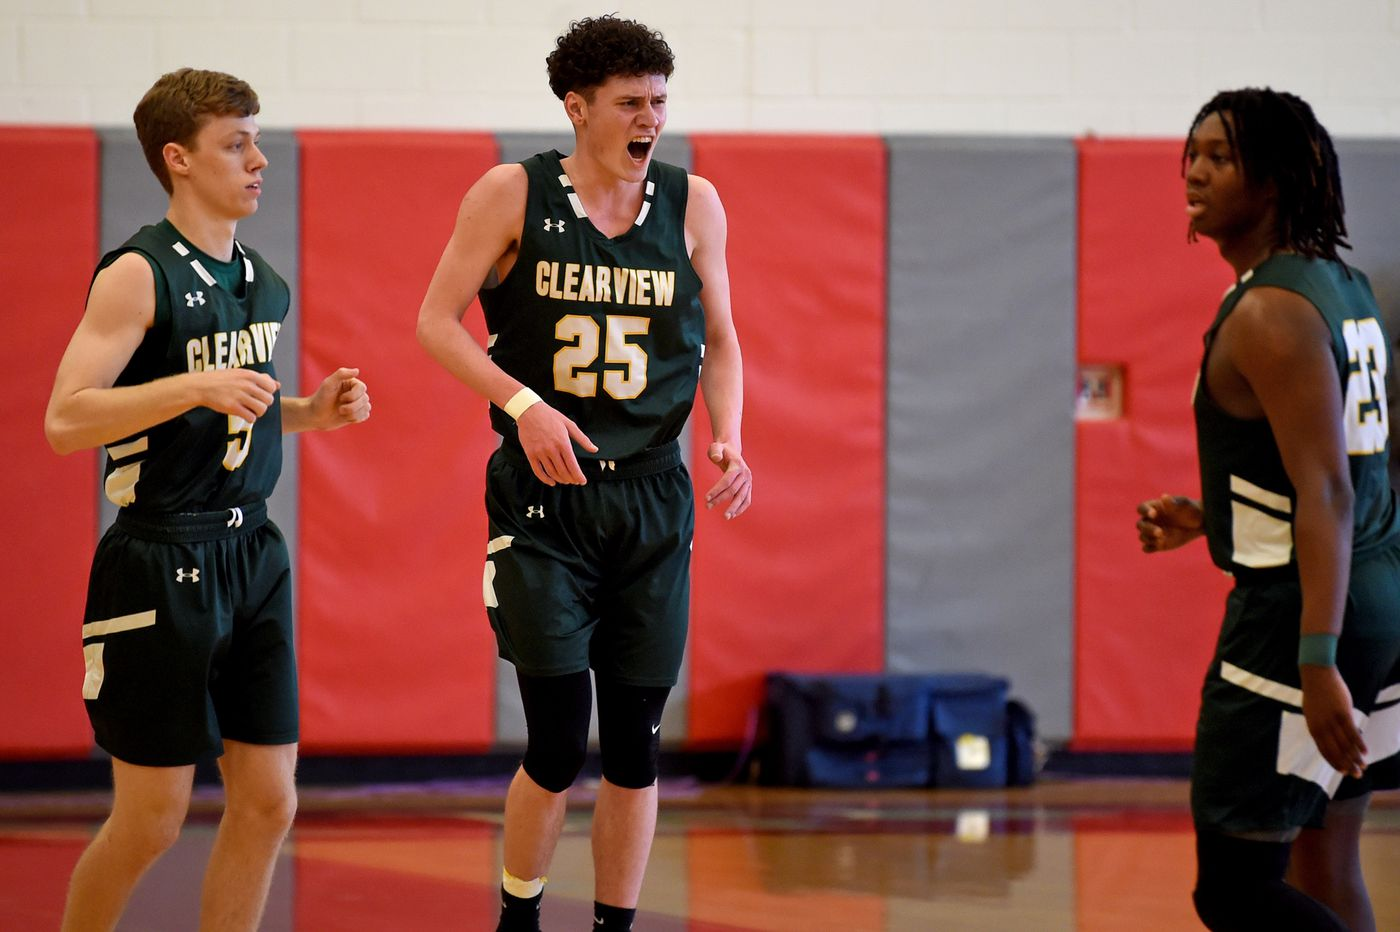 Clearview boys' basketball team reached new heights this season